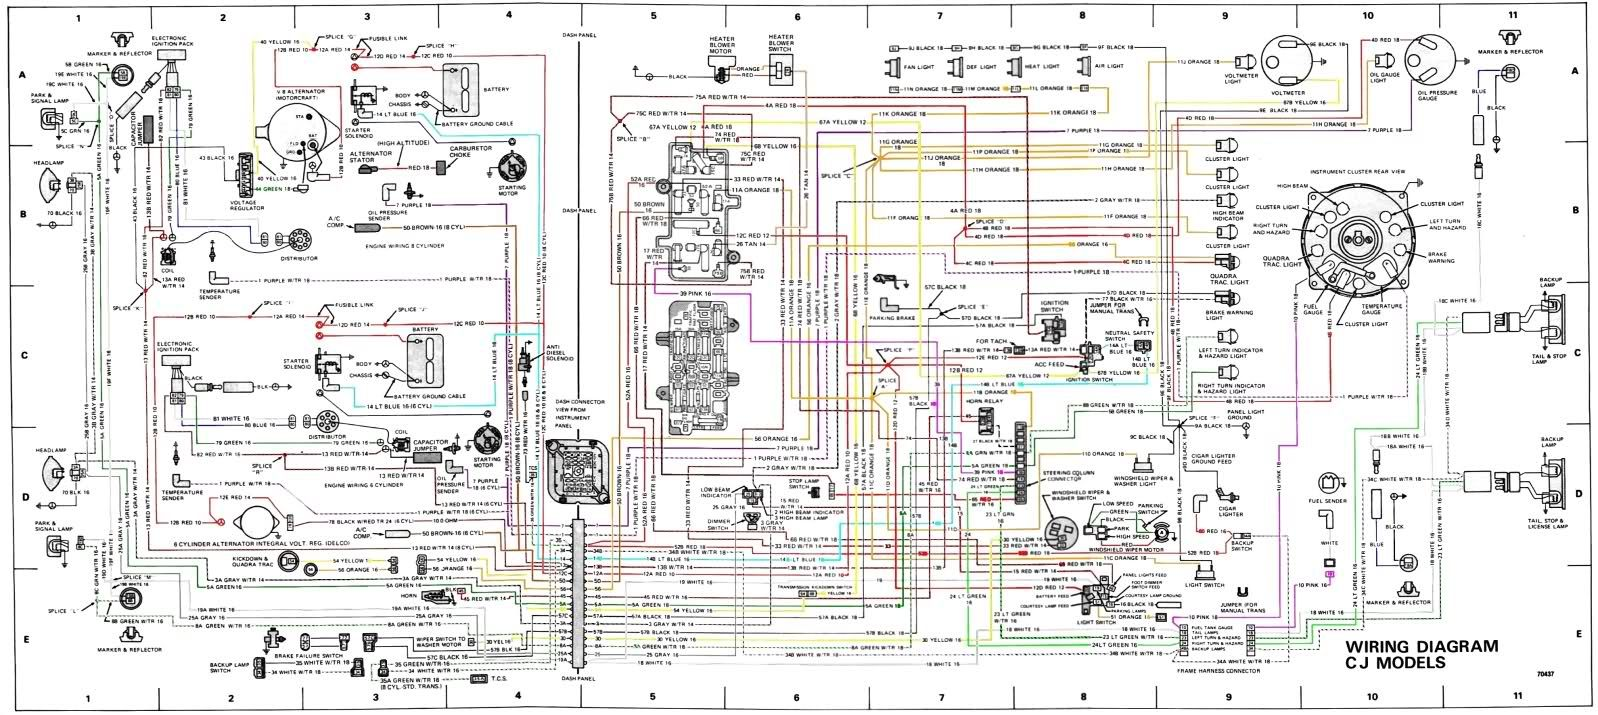 Wiring Diagram For 1984 Jeep Cj 7 - Wiring Diagram All split-large -  split-large.huevoprint.itHuevoprint